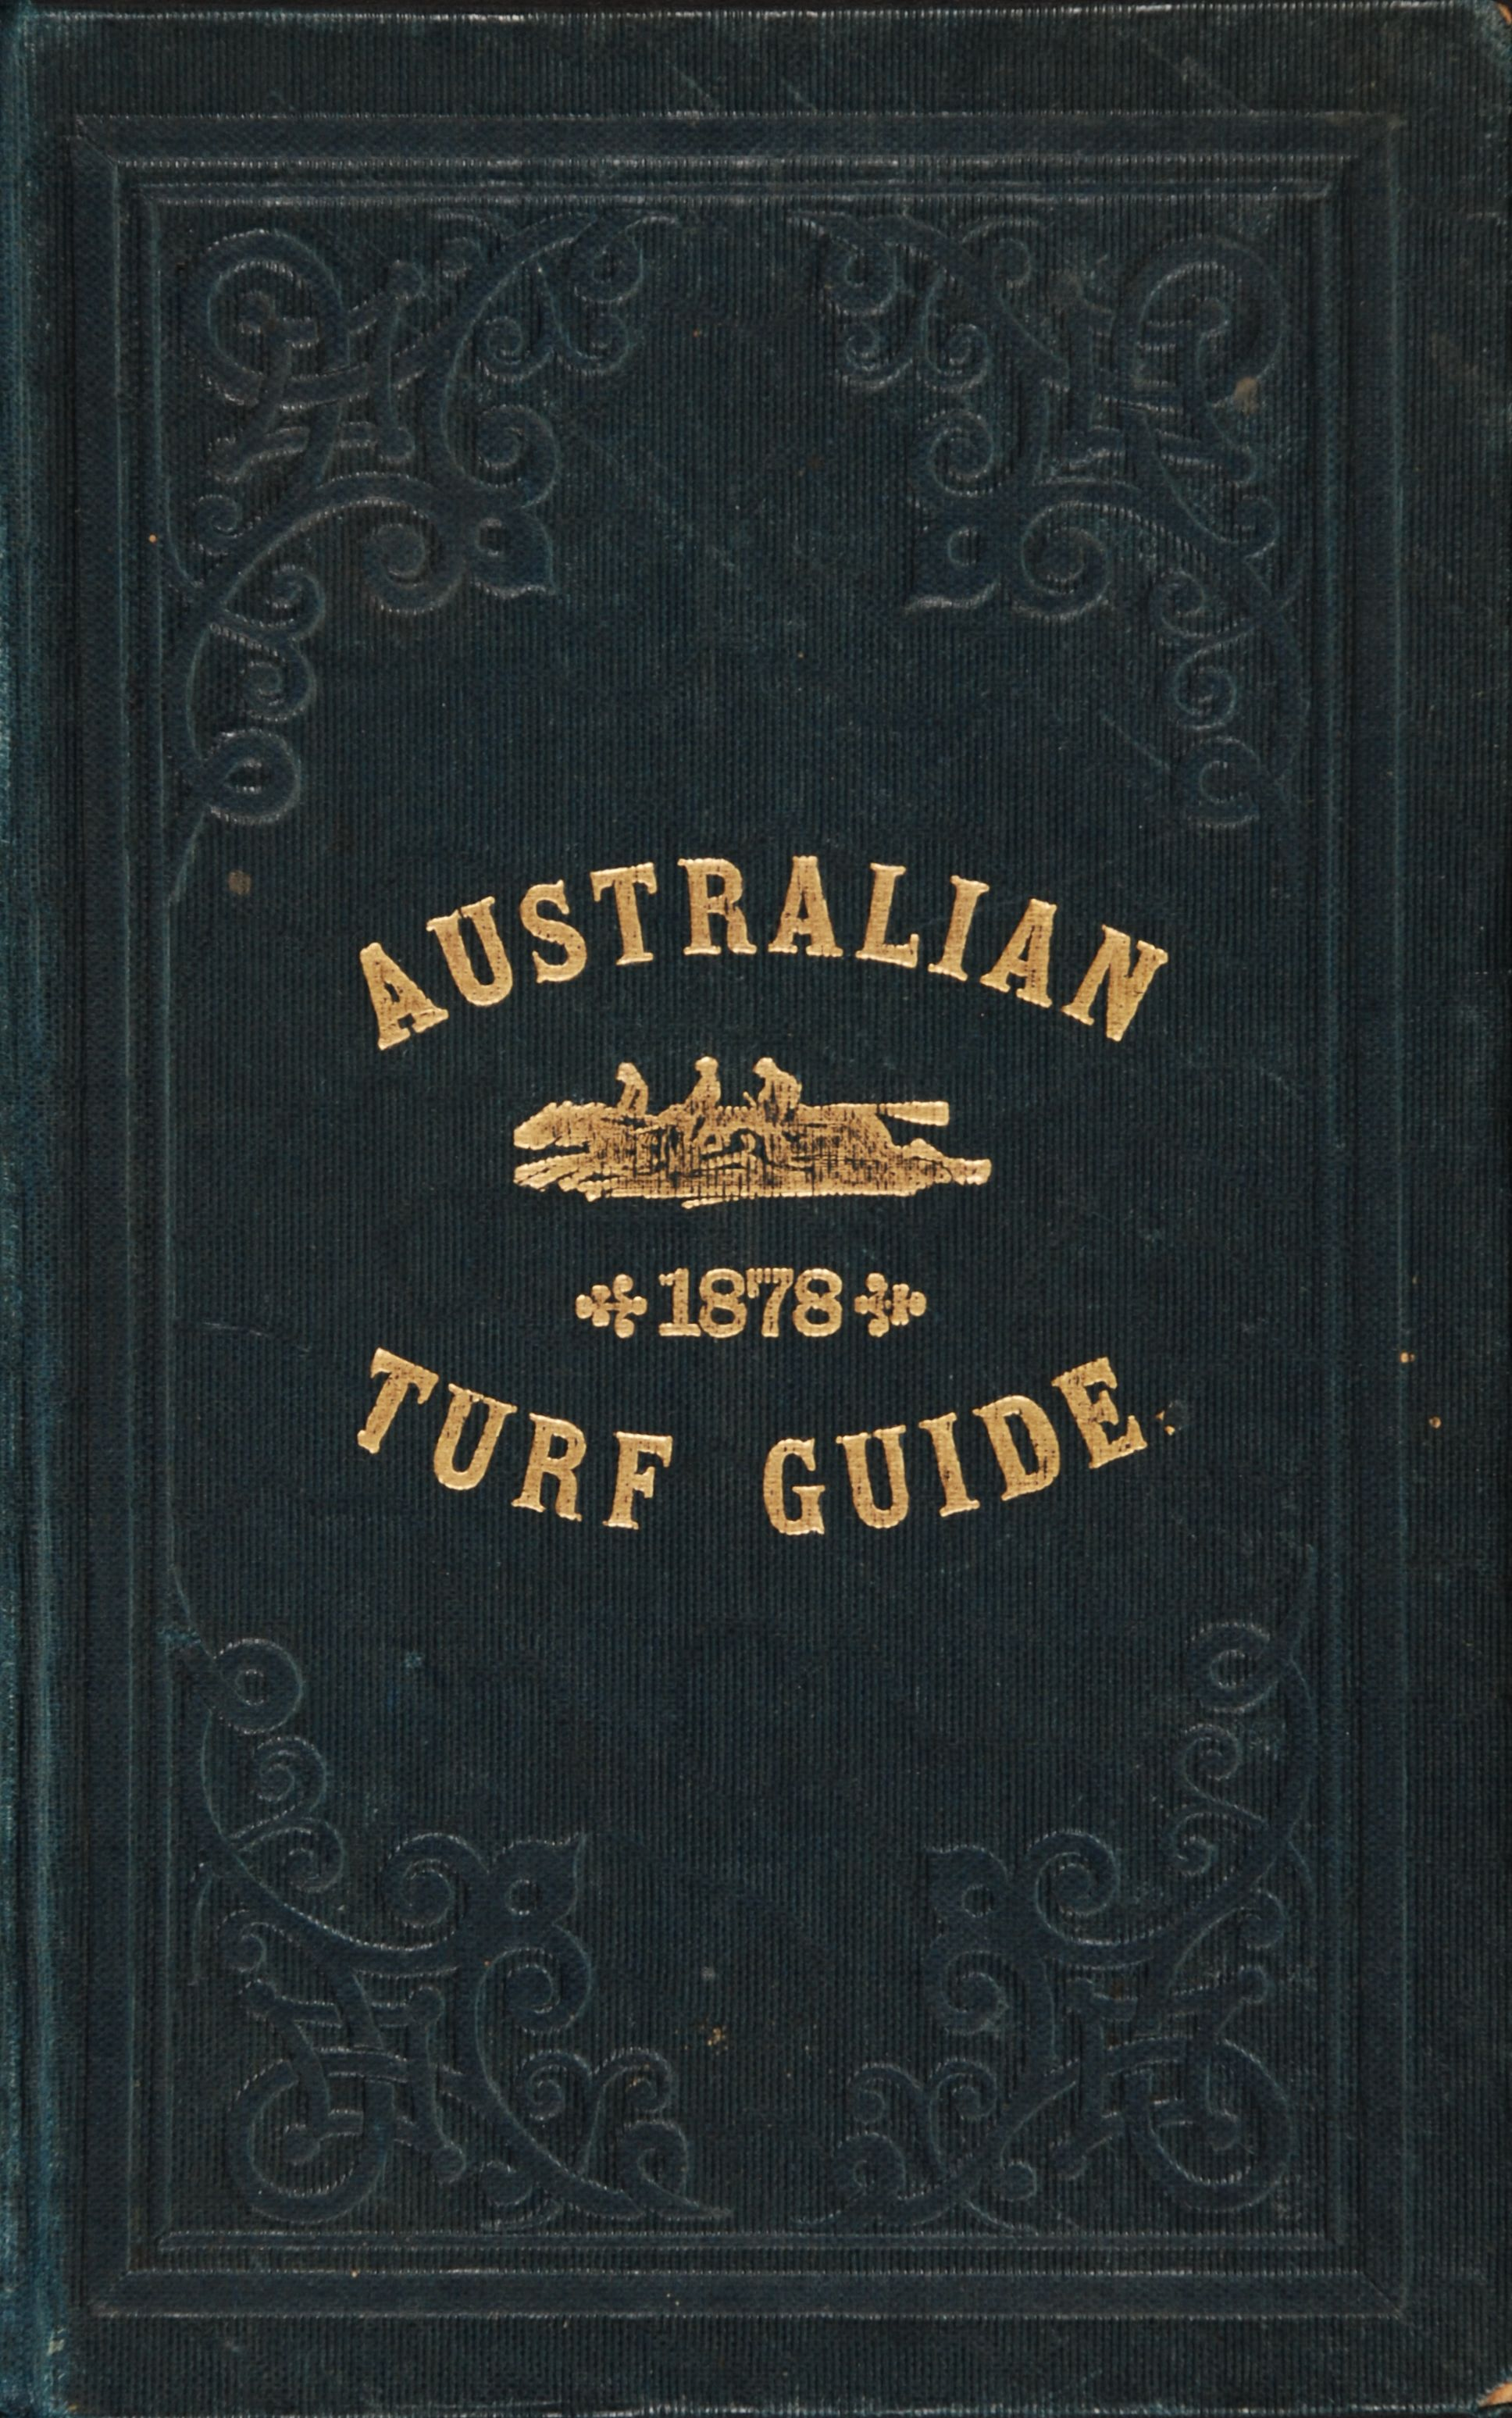 The Australian Turf Guide: containing a full report of the past season's racing, and entries for coming events.  Sydney: A.W. Beard, 1879.